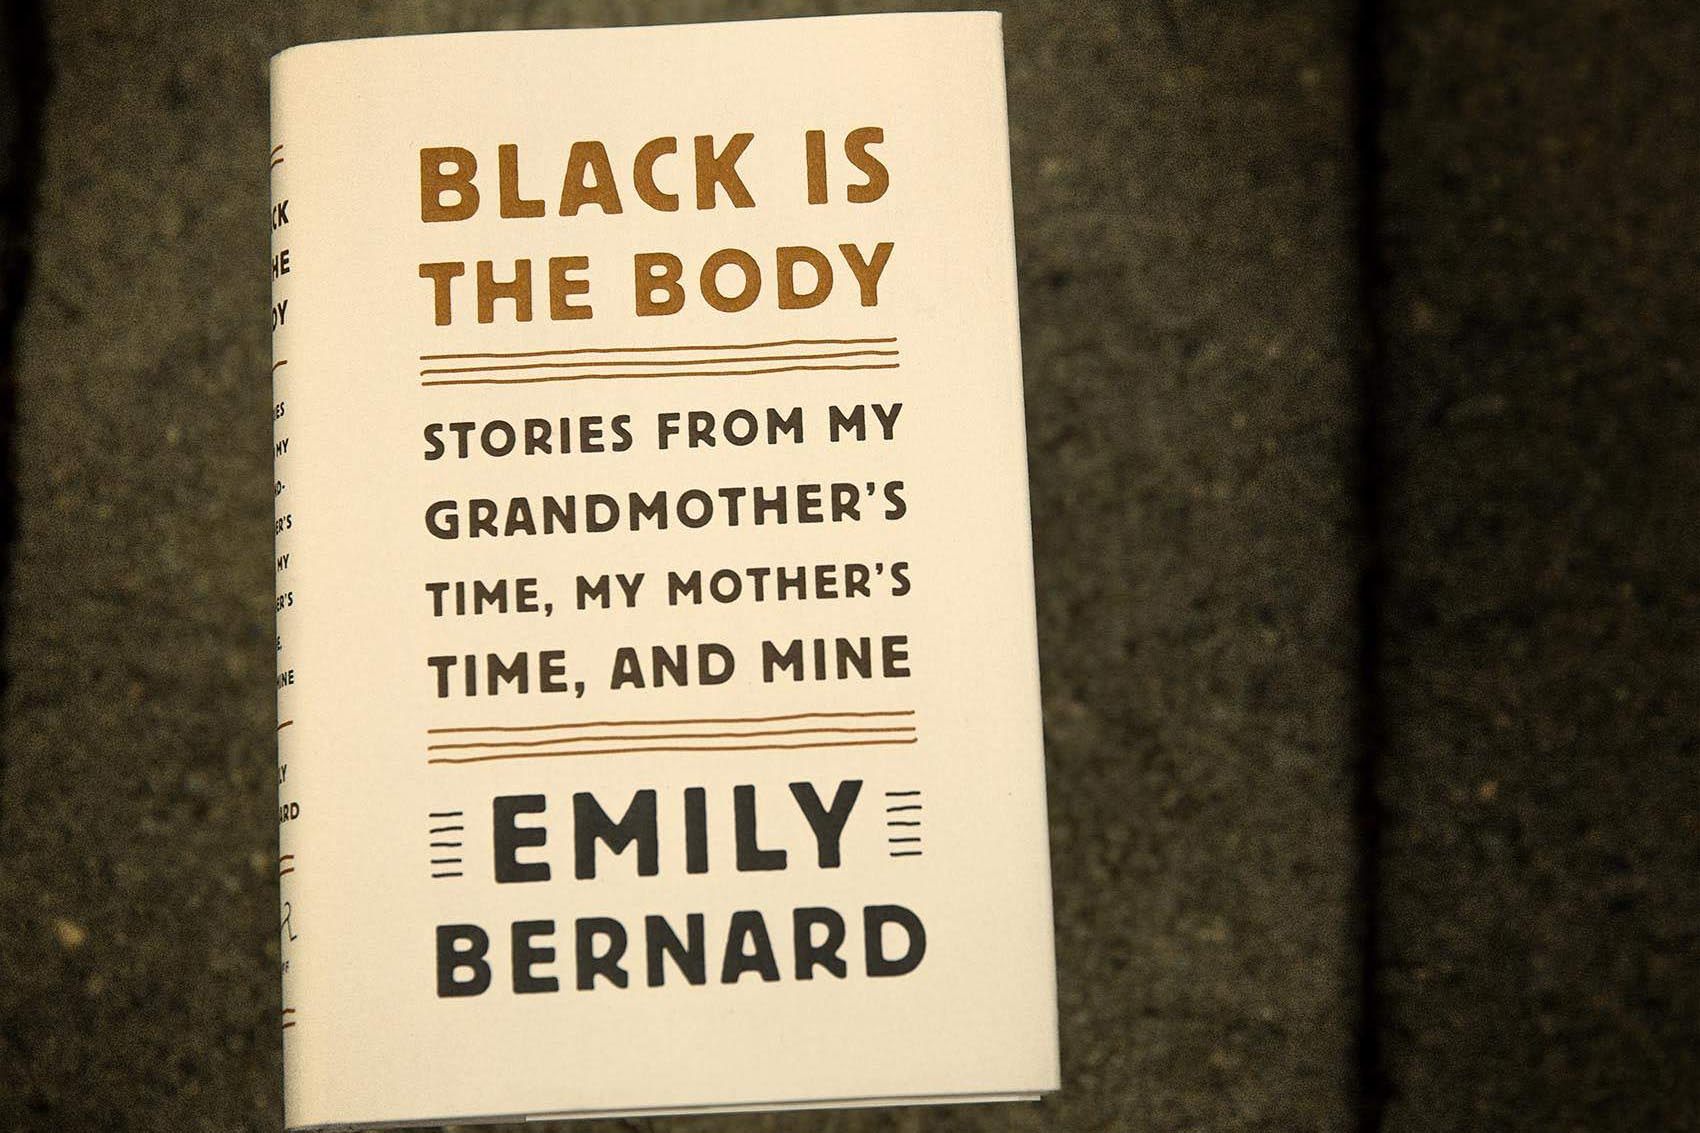 High School And College Essay Emily Bernards Black Is The Body Examines Violent Encounter Of Us  Race Relations Essay Writing Examples English also Essay On Importance Of English Language Emily Bernards Black Is The Body Examines Violent Encounter Of  English Persuasive Essay Topics